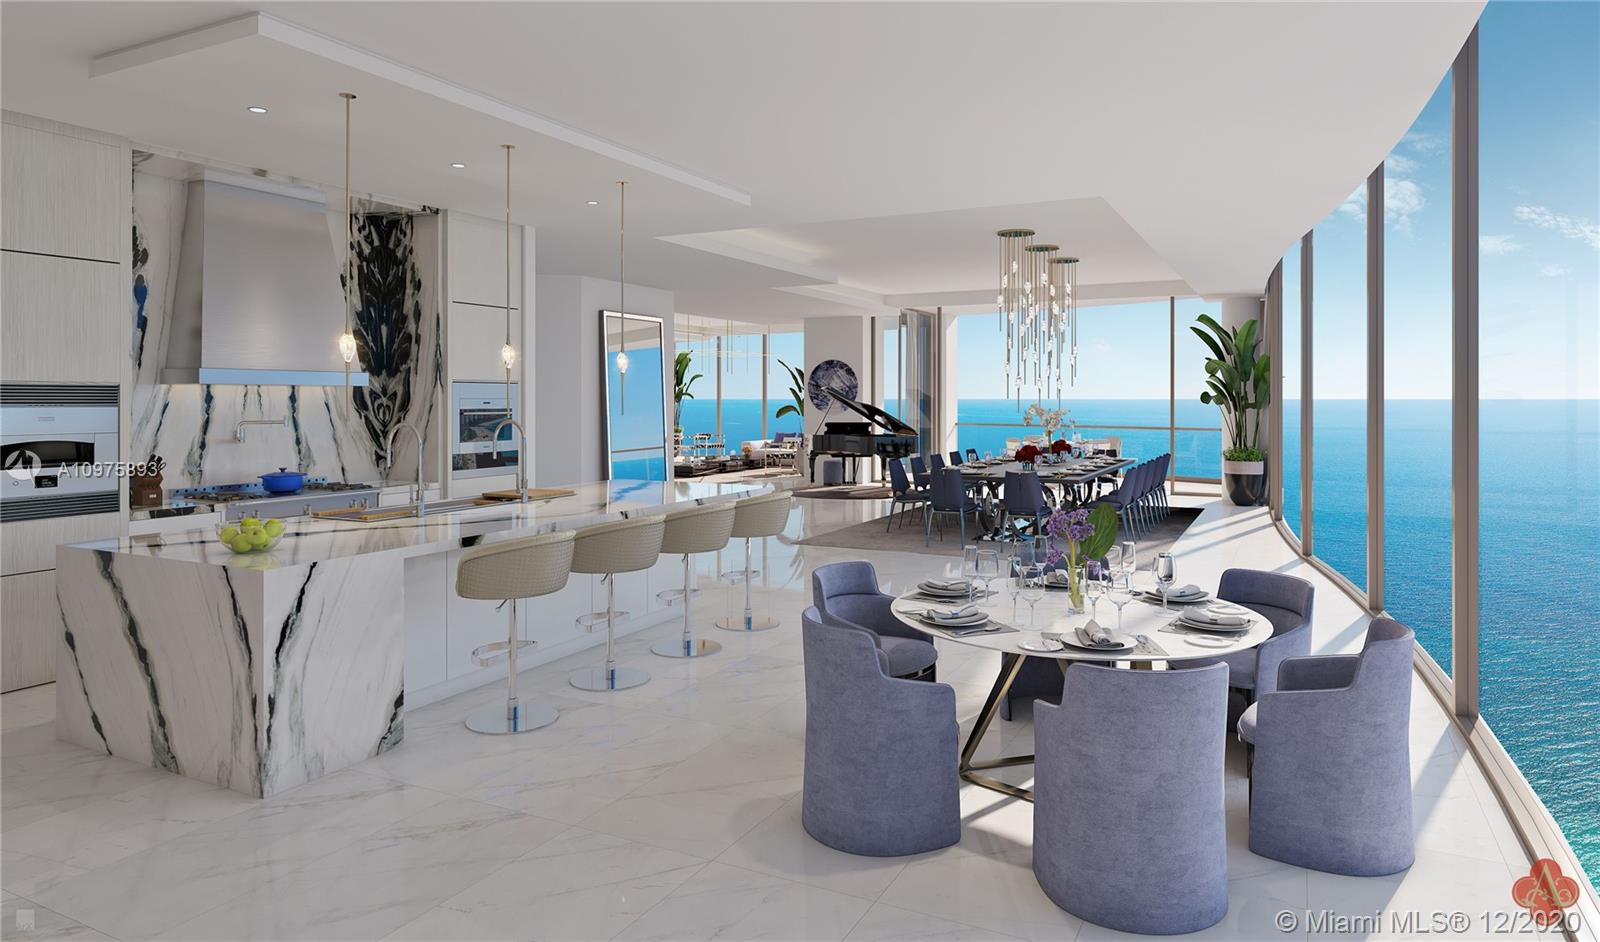 17901 Collins Ave, Unit #3601/3701 Luxury Real Estate